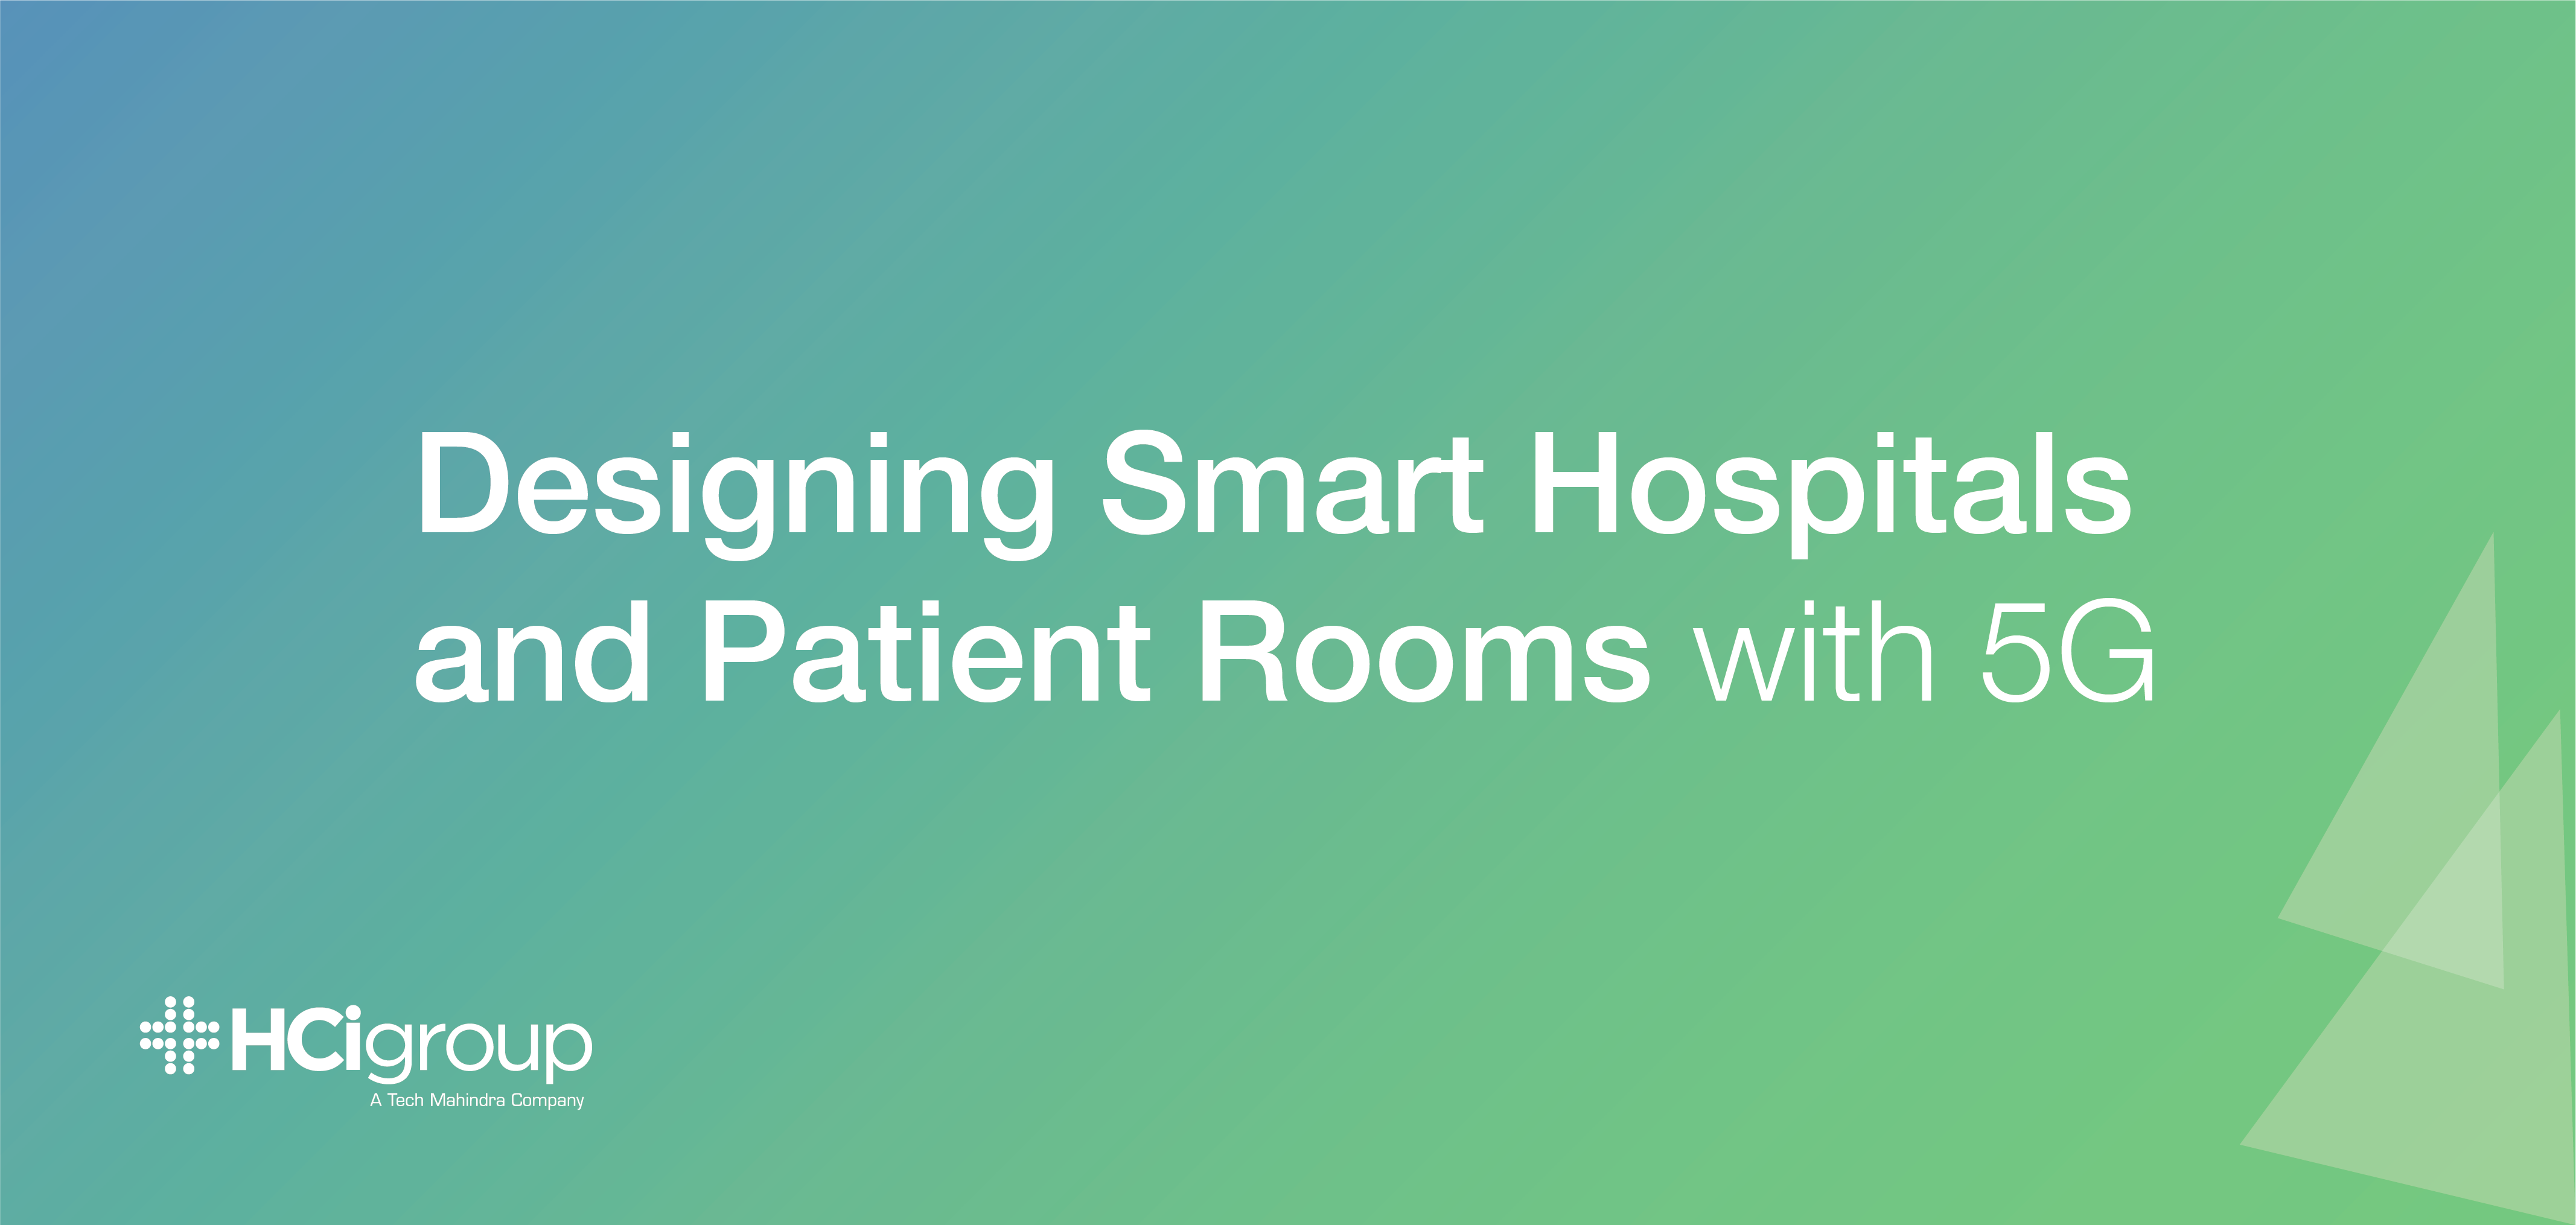 Designing Smart Hospitals and Patient Rooms with 5G